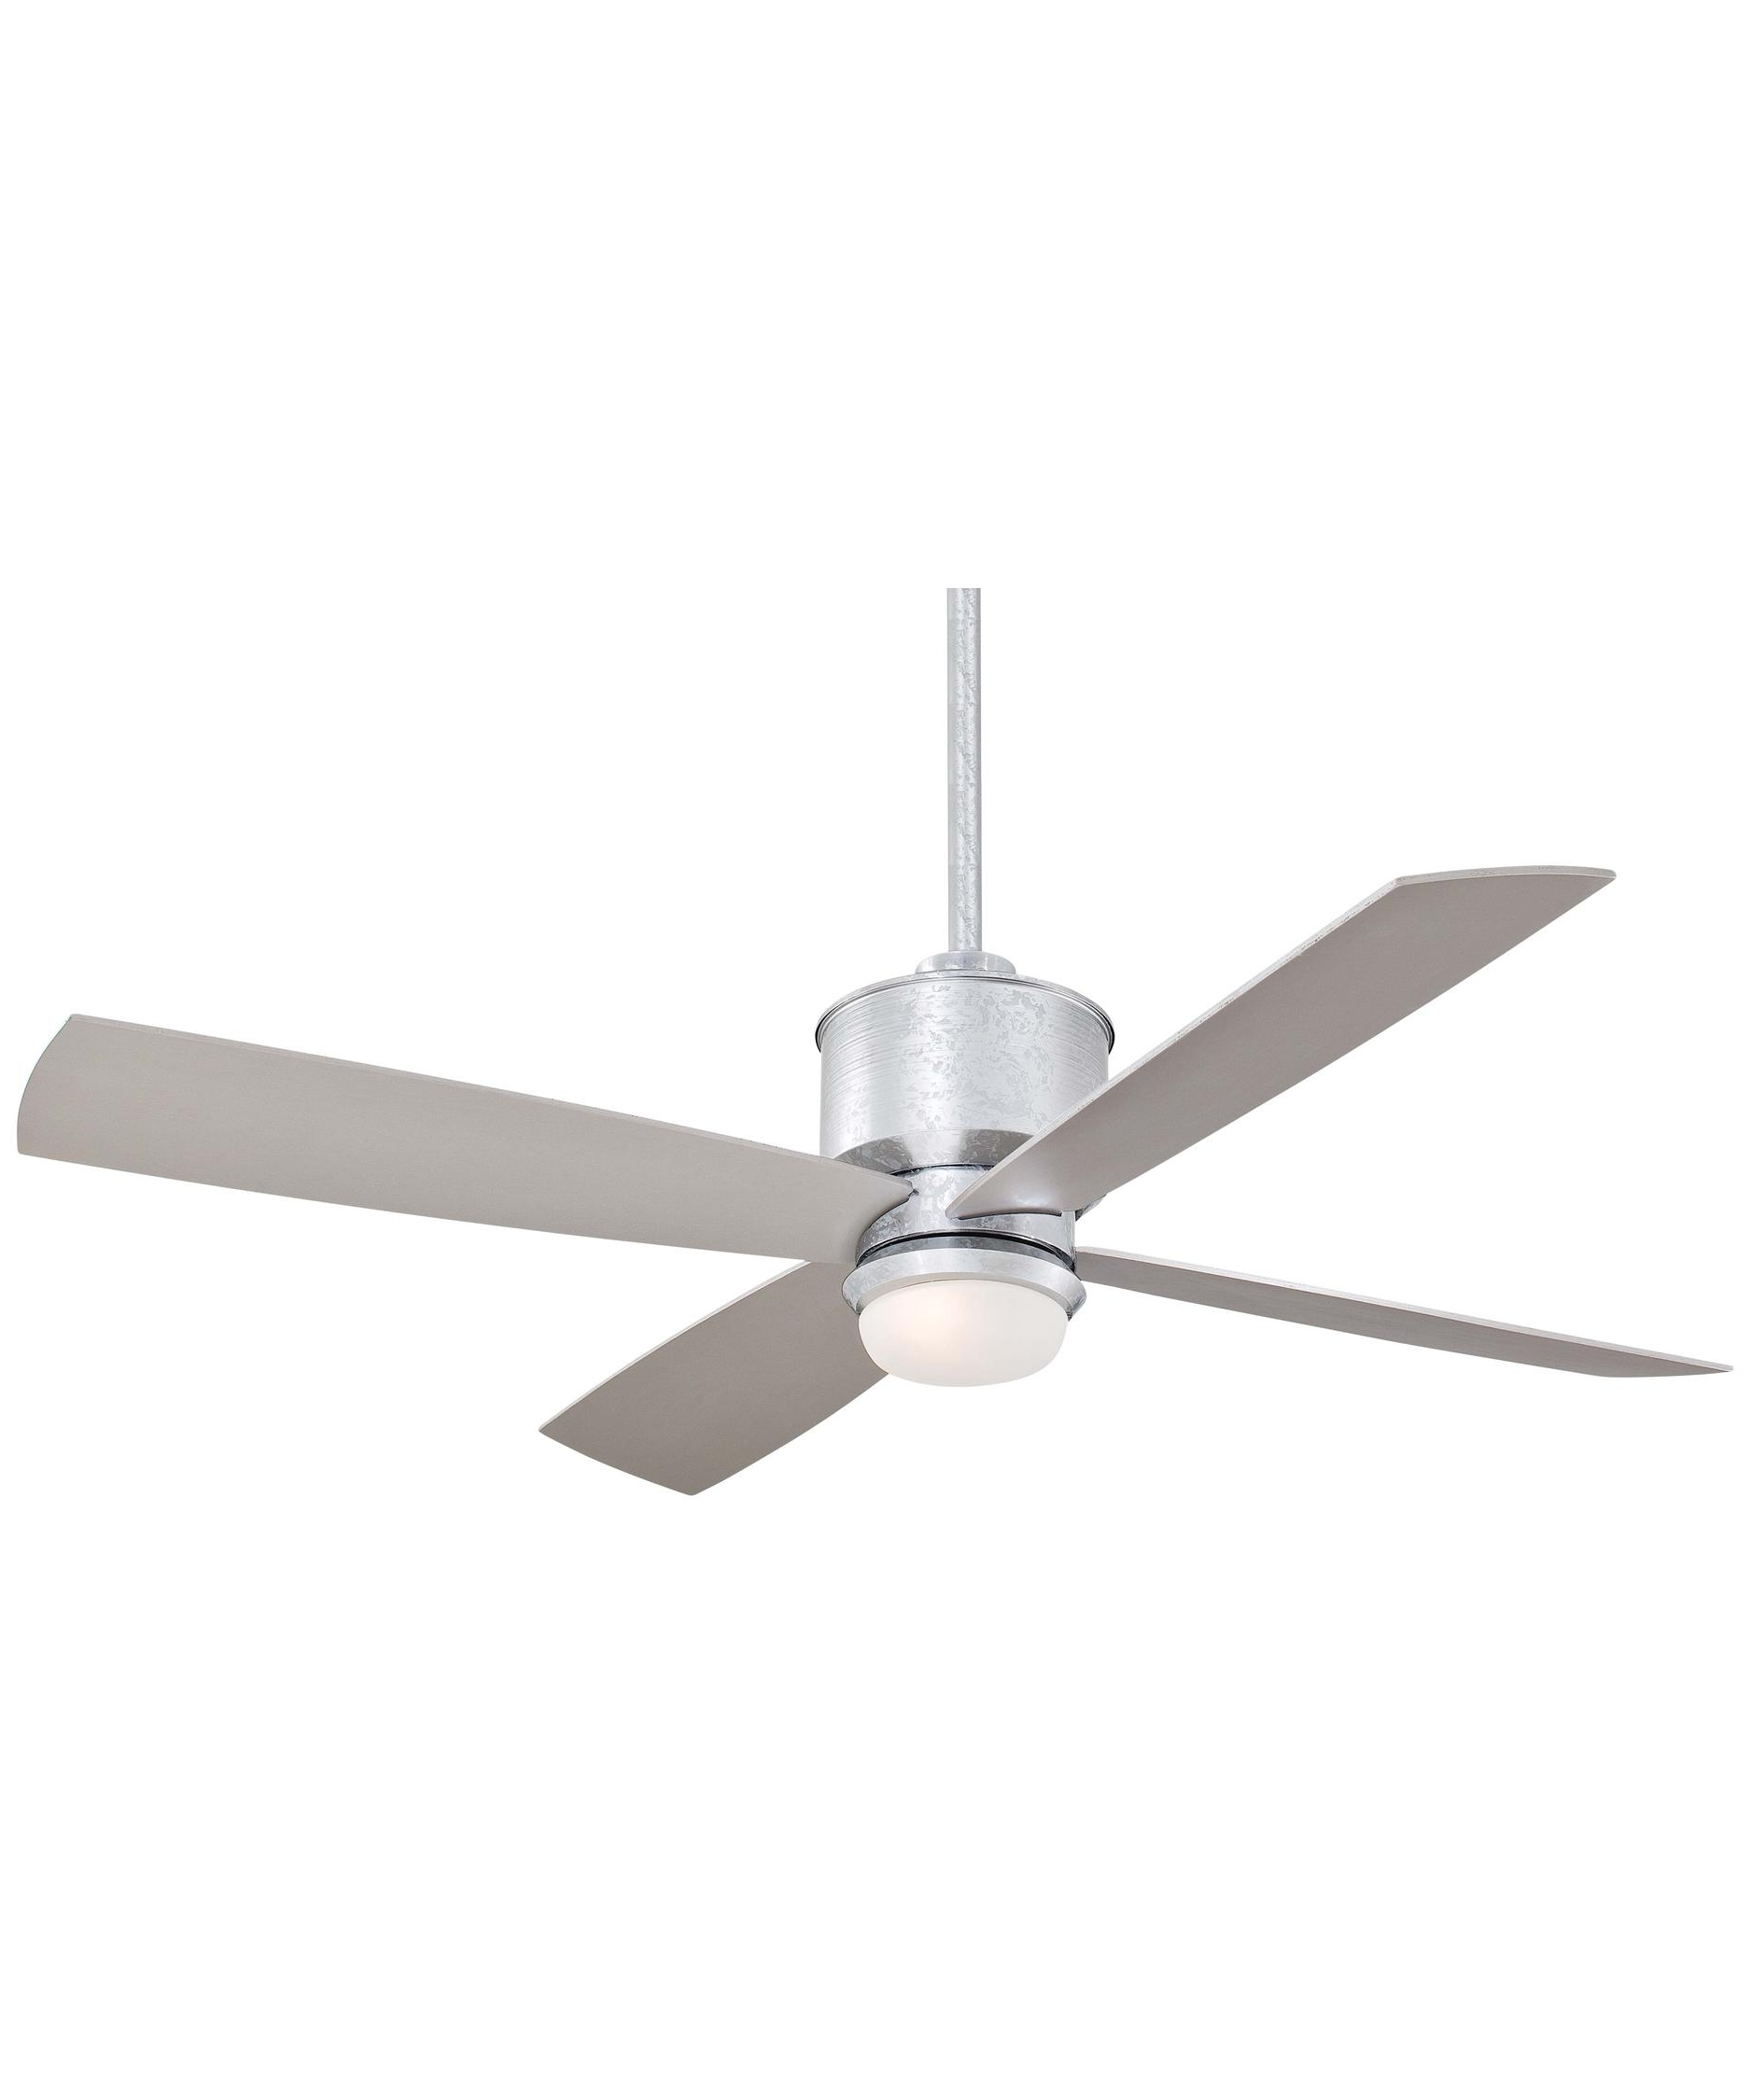 2019 Minka Aire F734 Strata 52 Inch 4 Blade Ceiling Fan (View 3 of 20)